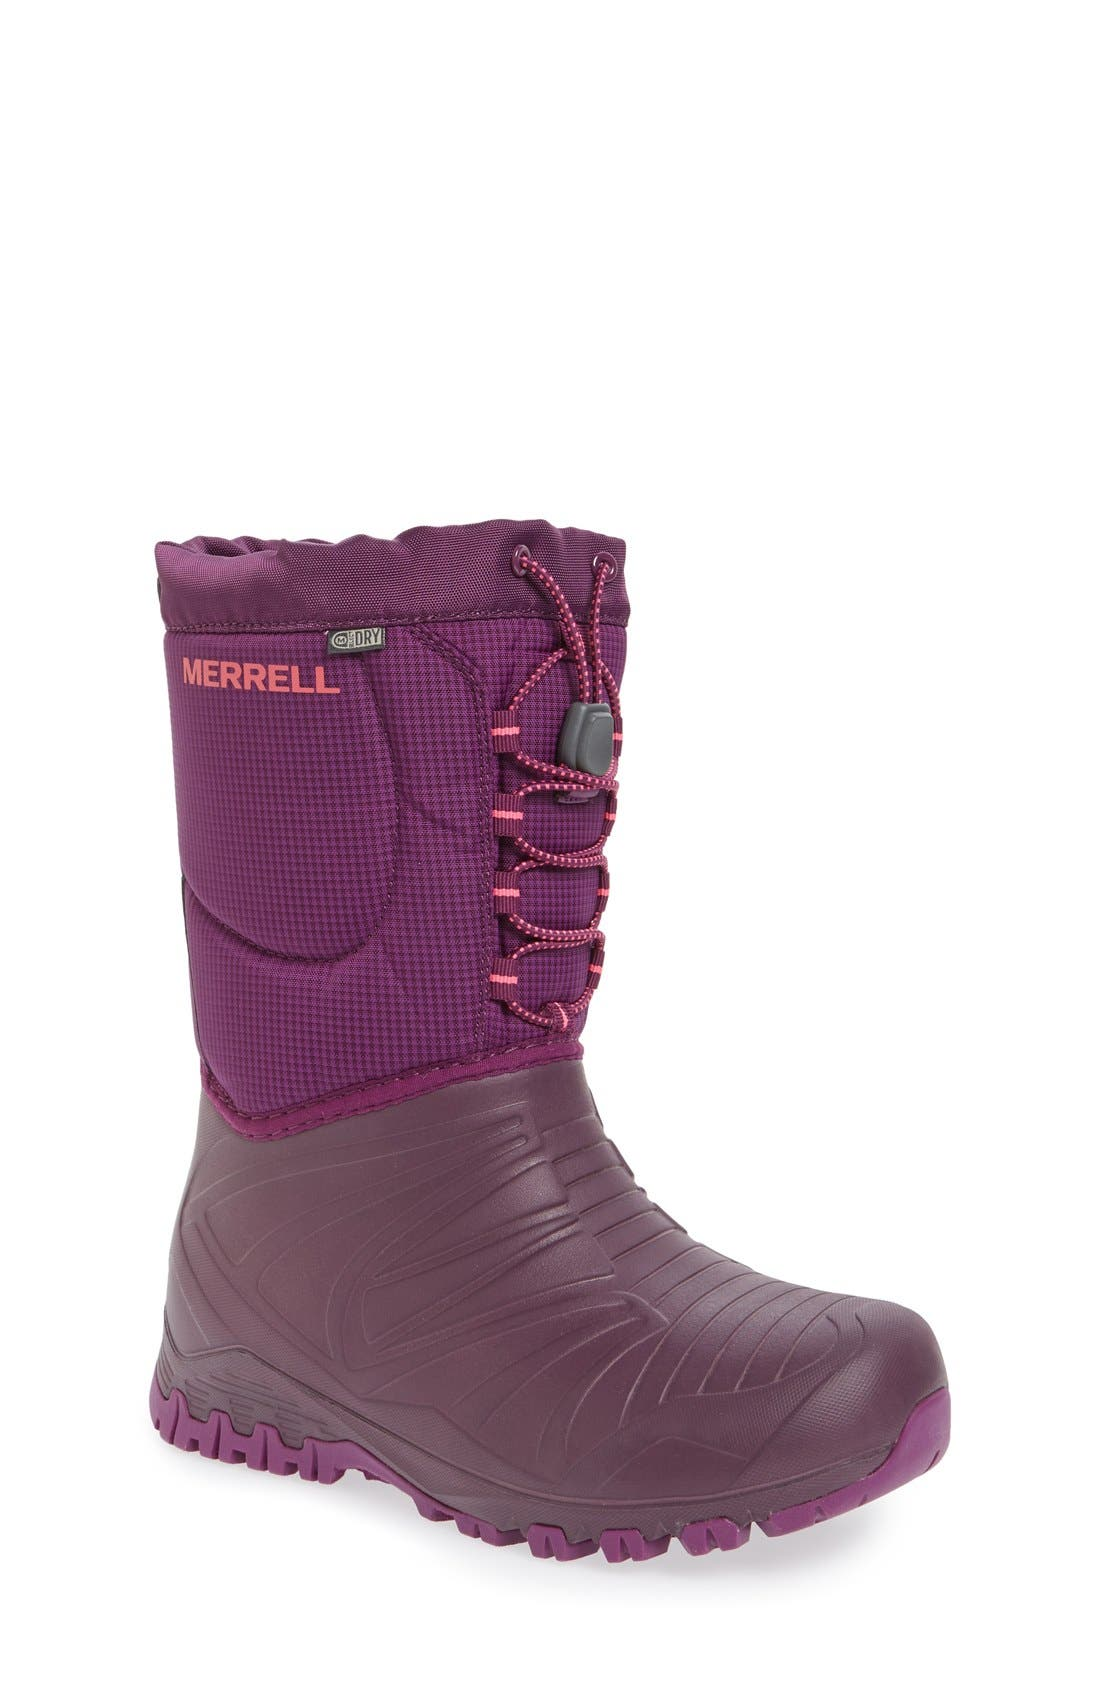 Merrell 'Snow Quest' Waterproof Boot (Toddler, Little Kid & Big Kid)